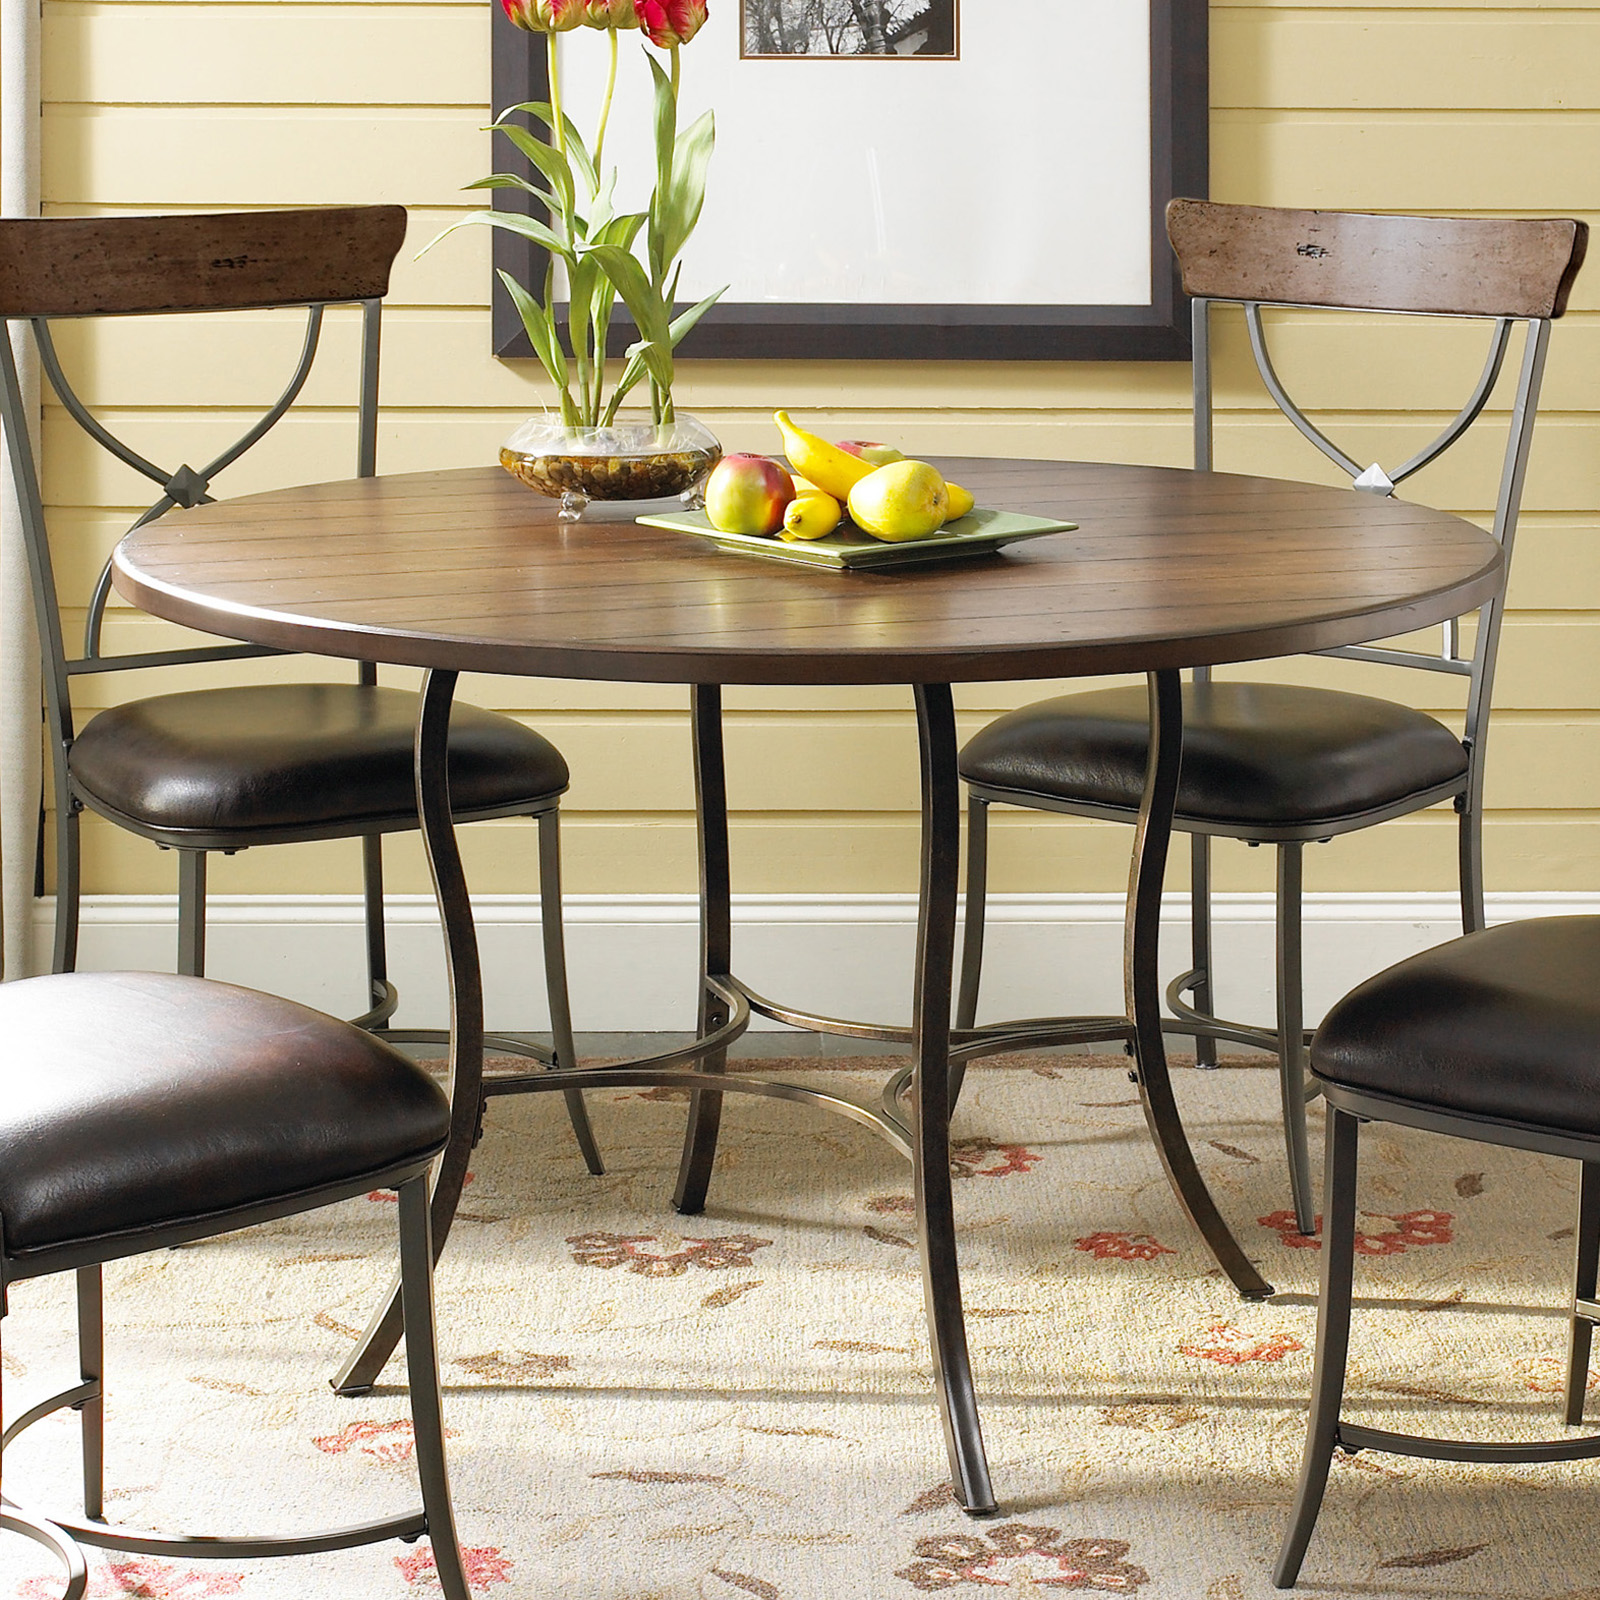 Wood And Metal Dining Table Set With X Back Chairs Dining Table Sets. Full resolution‎  file, nominally Width 1600 Height 1600 pixels, file with #B5A316.